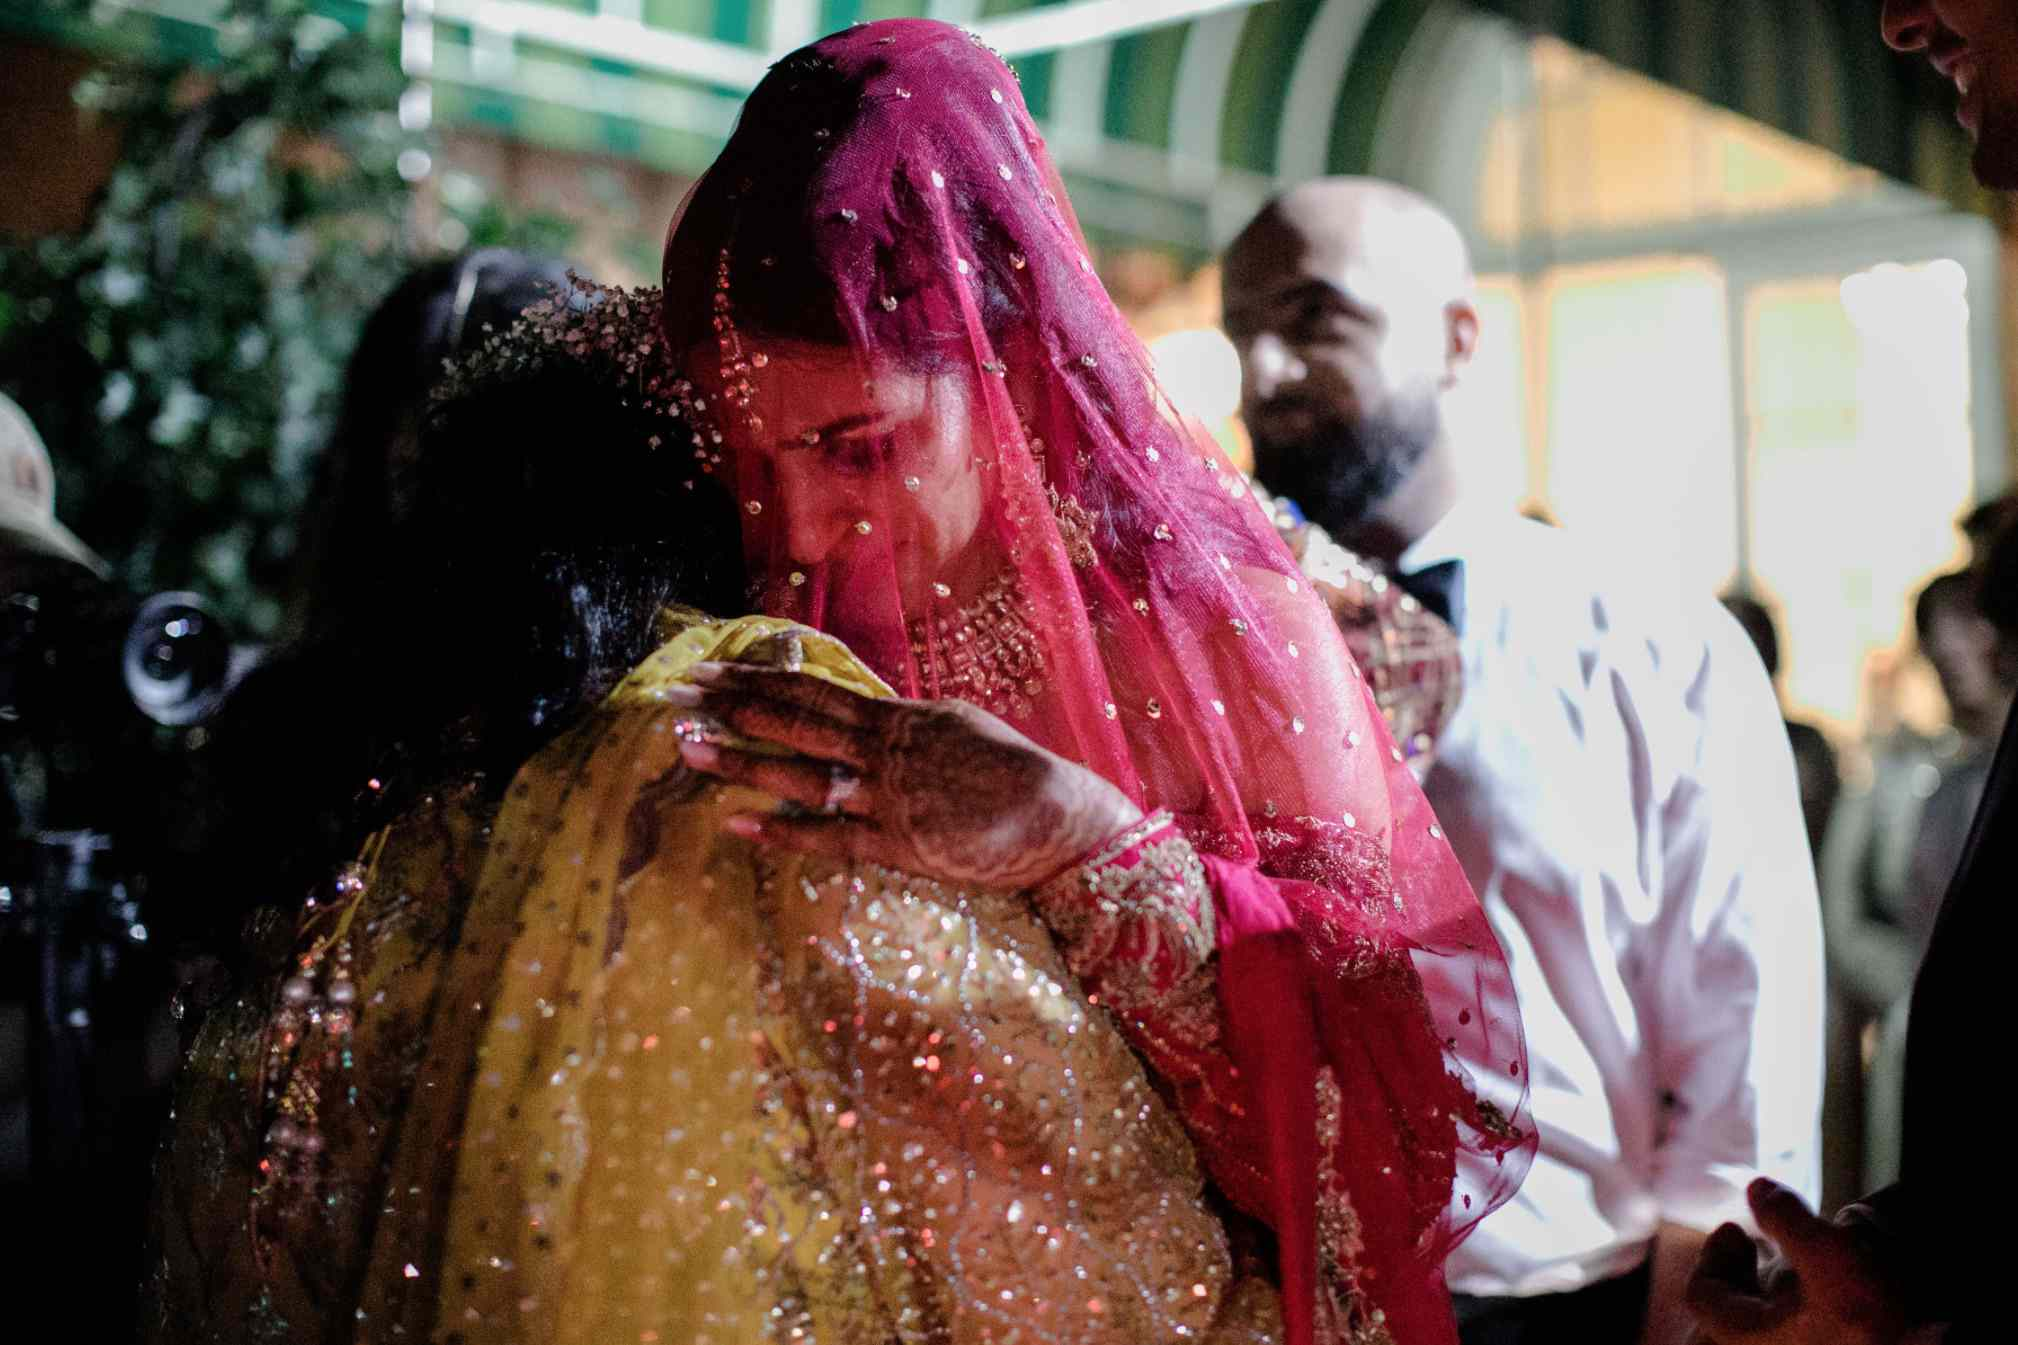 South Asian bride hugging mother in emotional farewell